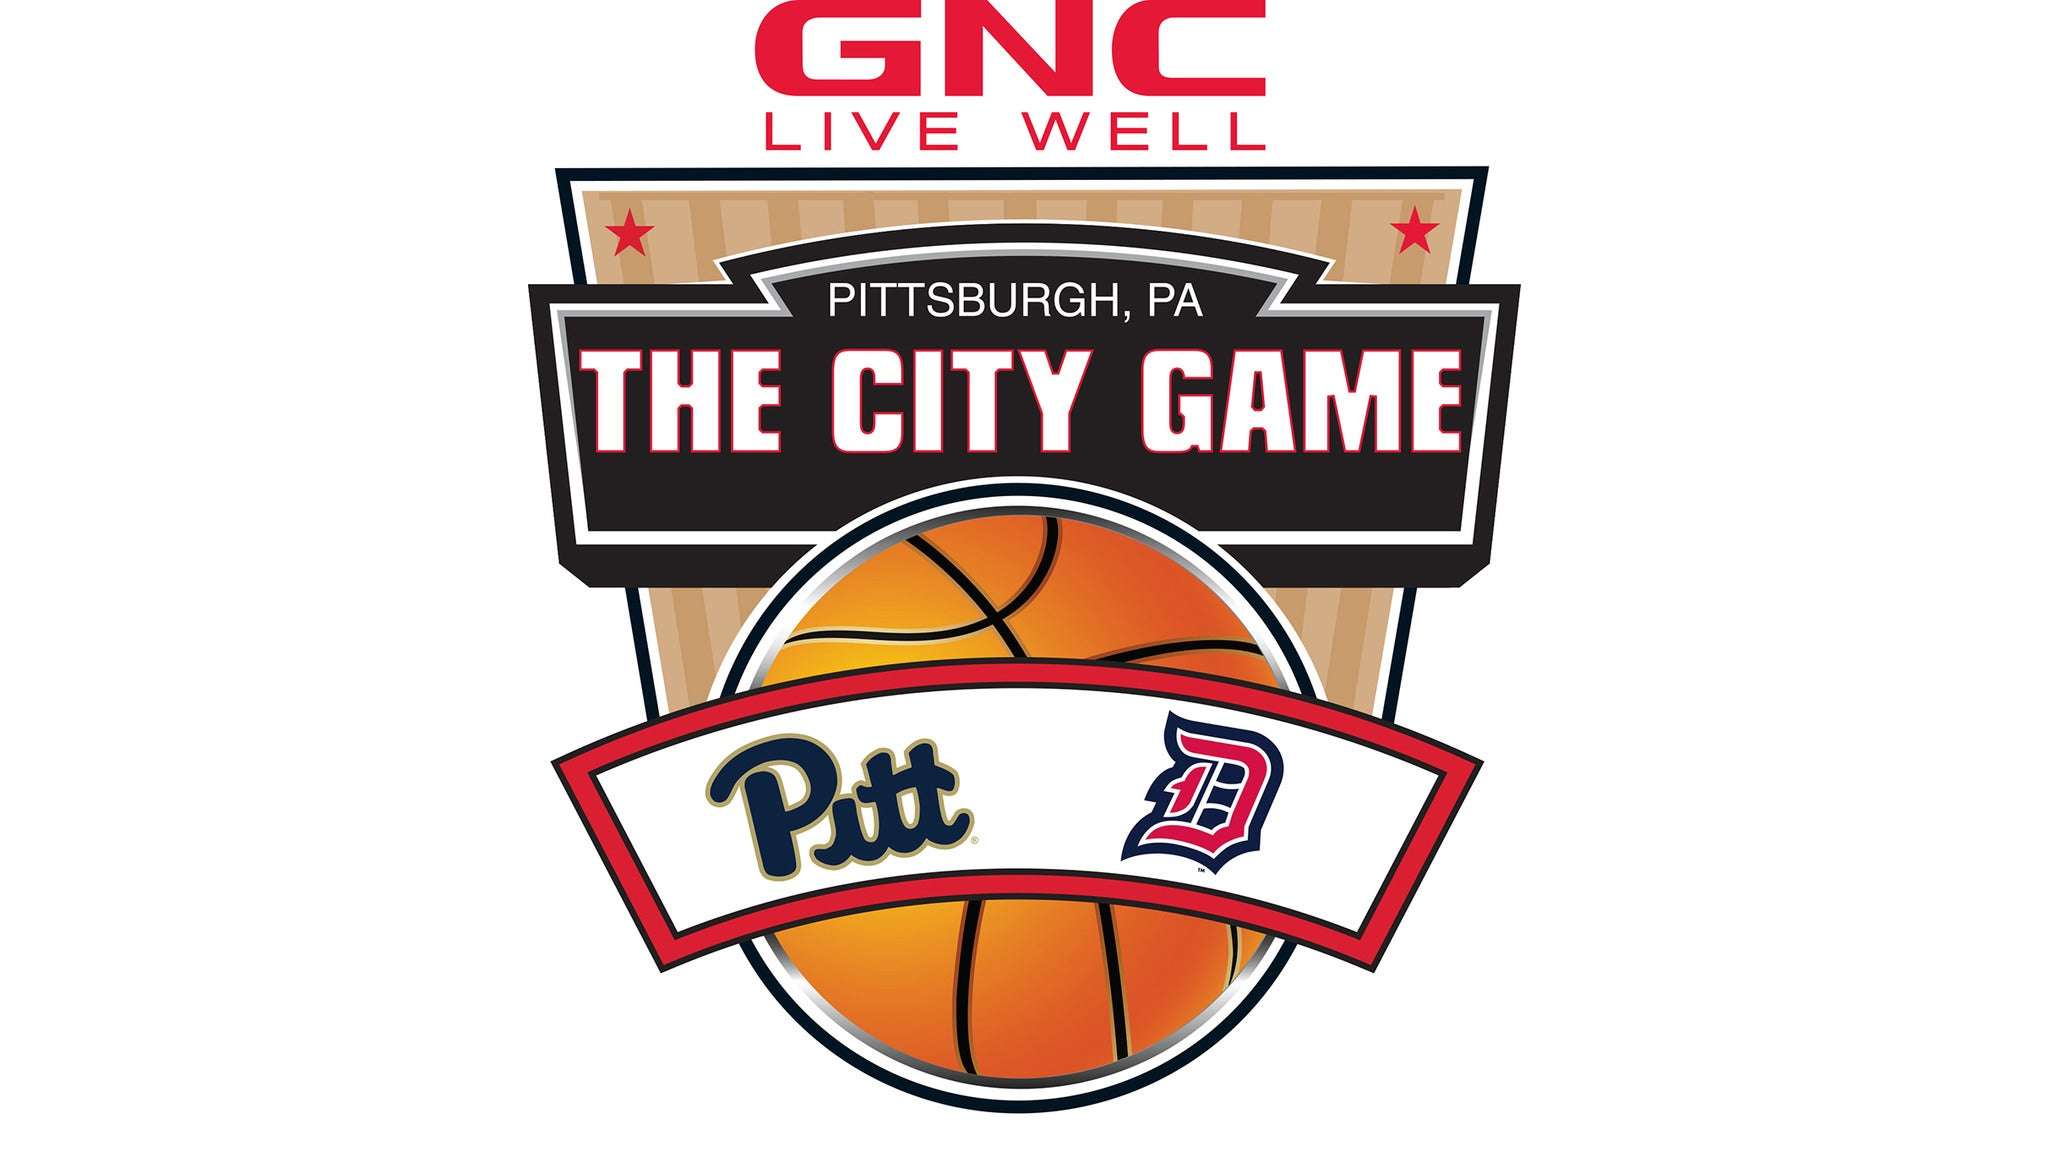 The City Game 2017 Presented By GNC at Webster Bank Arena